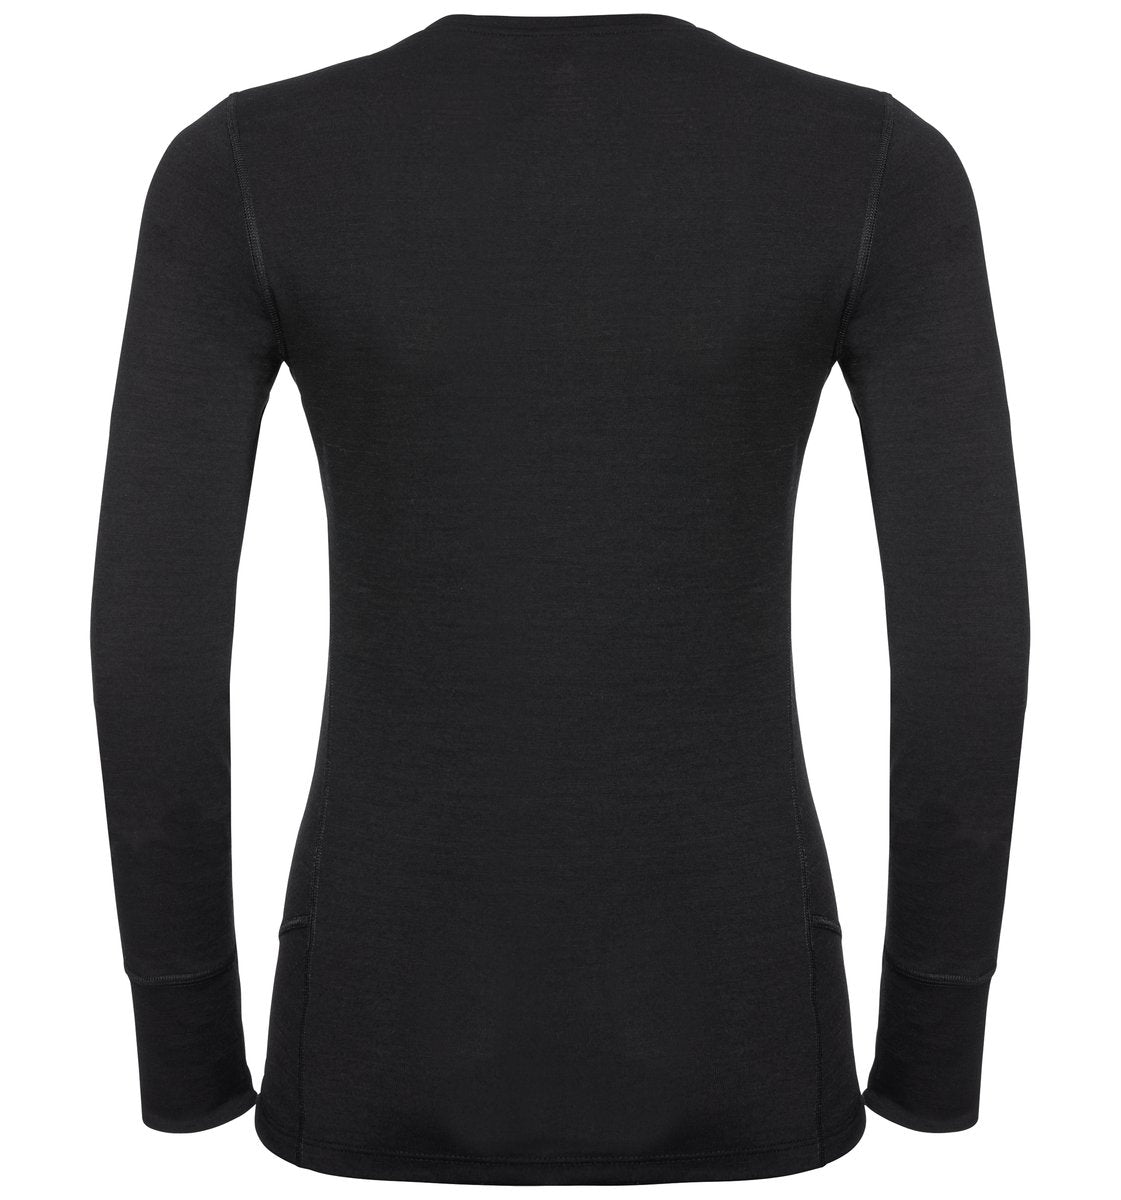 Odlo Women's NATURAL 100% MERINO WARM Long-Sleeve Baselayer Top